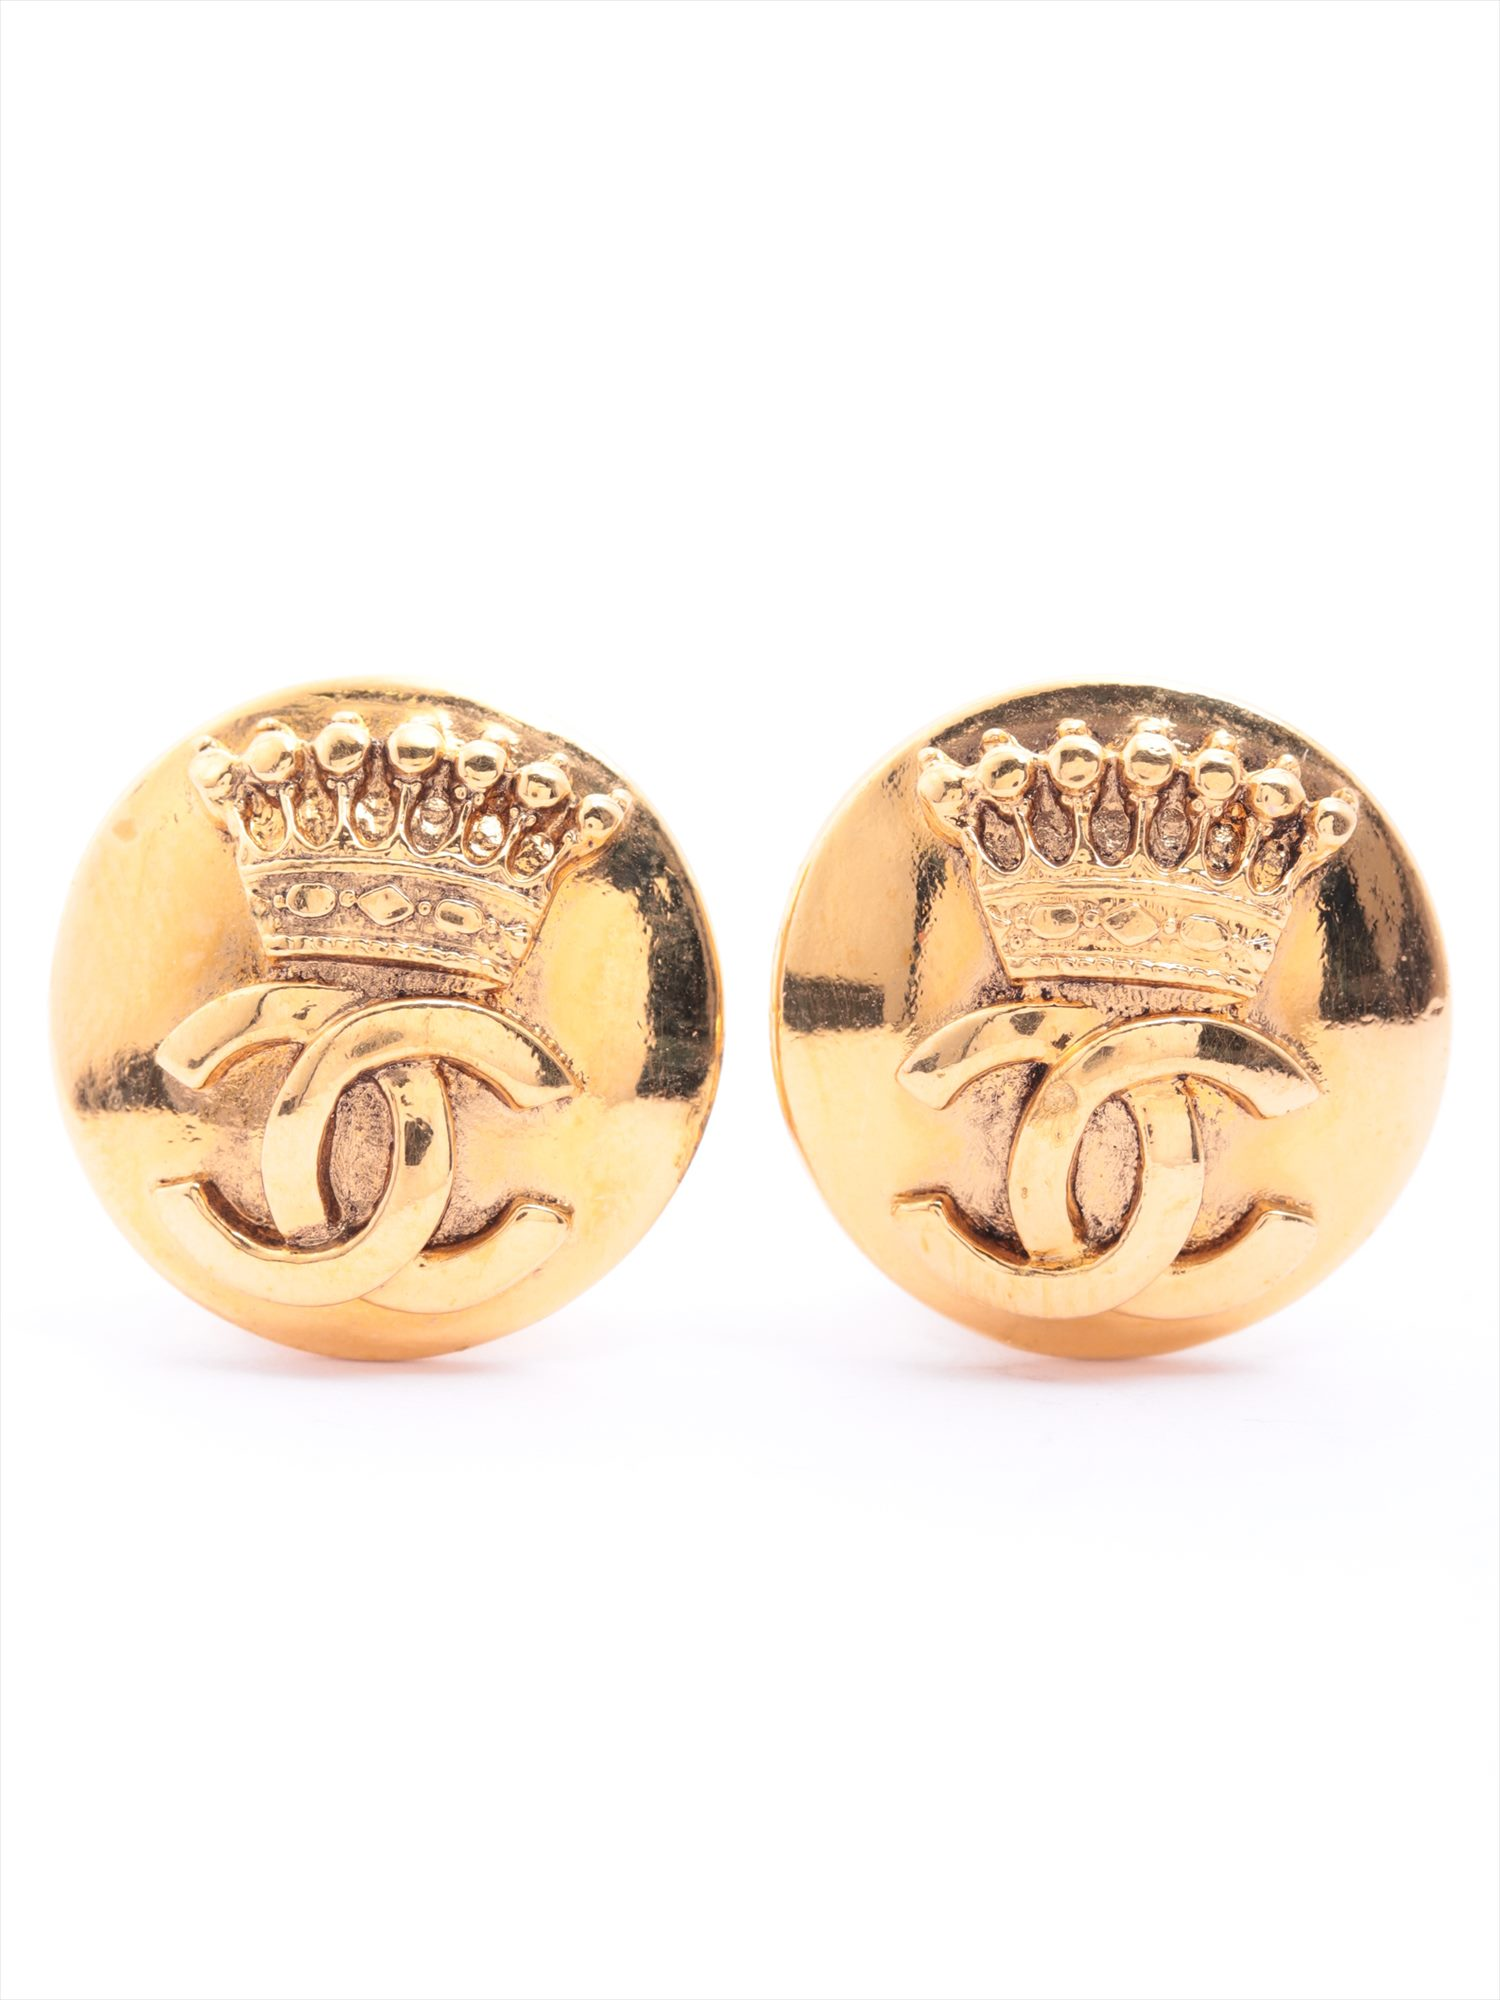 [Used goods] Chanel Coco mark earrings (for both ears) GP Gold Crown 96A